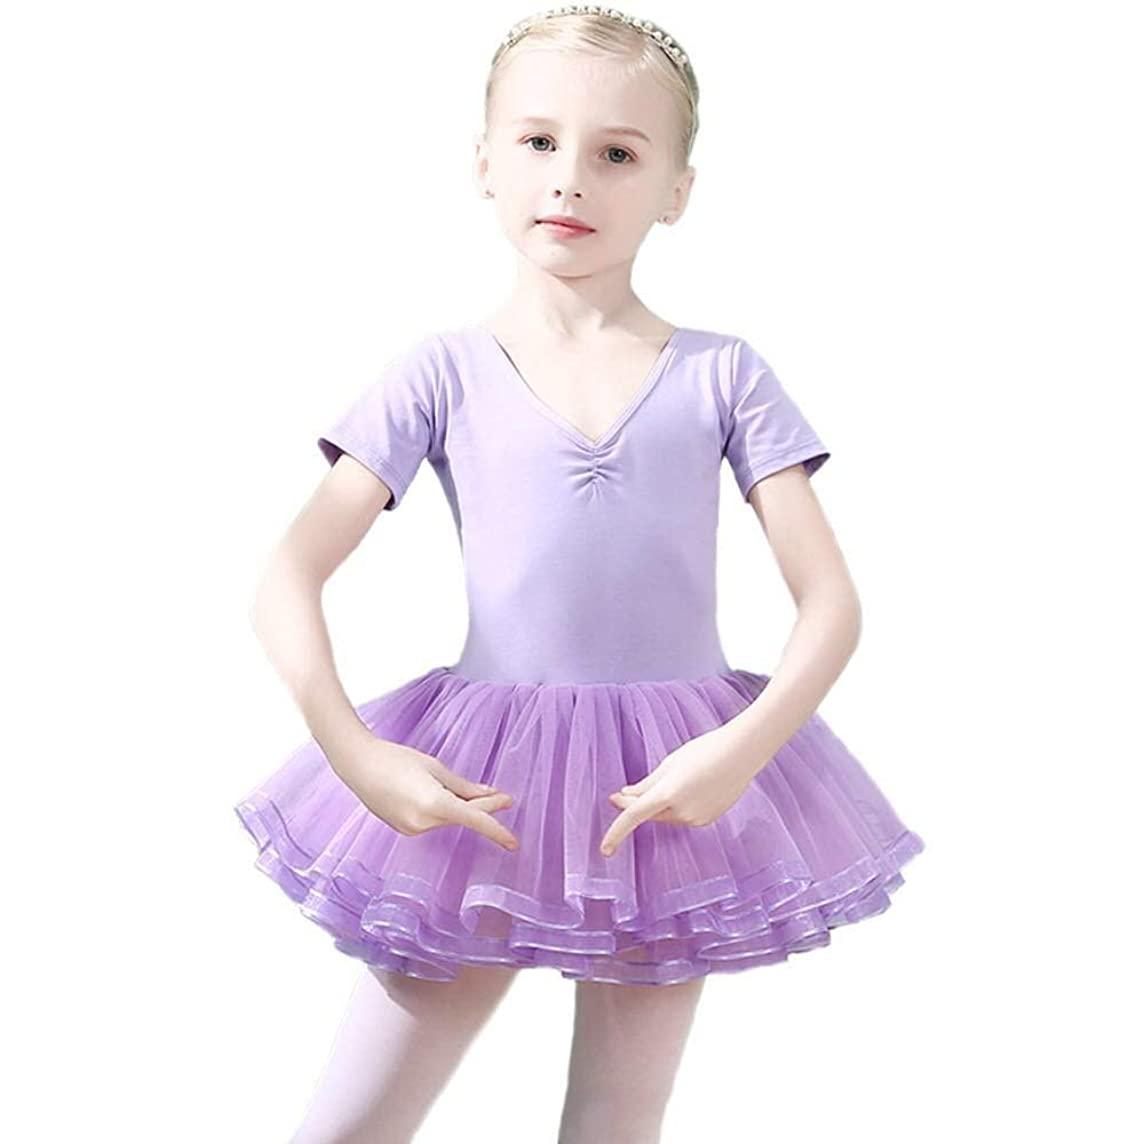 Winzero Girls Ballet Tutu Slim Dress Short Sleeve Soft Cotton with Back Bow-knot for Dancing Athletic Leotards Age 4-9 Years